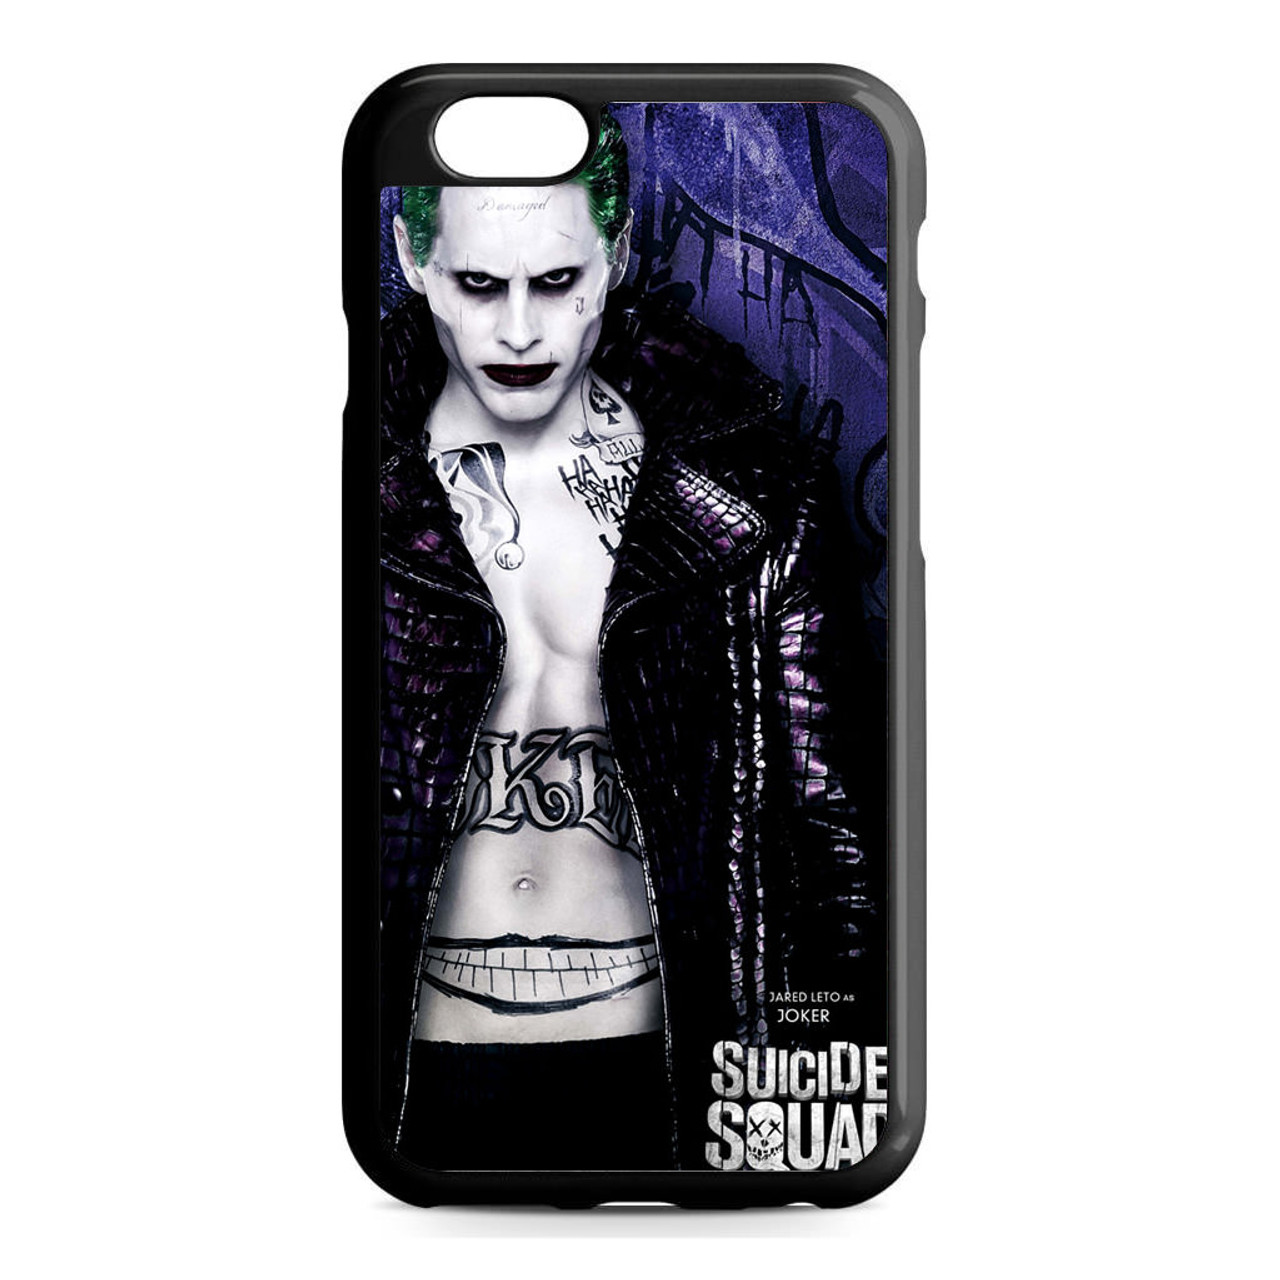 new arrival be802 0b1b7 Suicide Squad Joker iPhone 6/6S Case